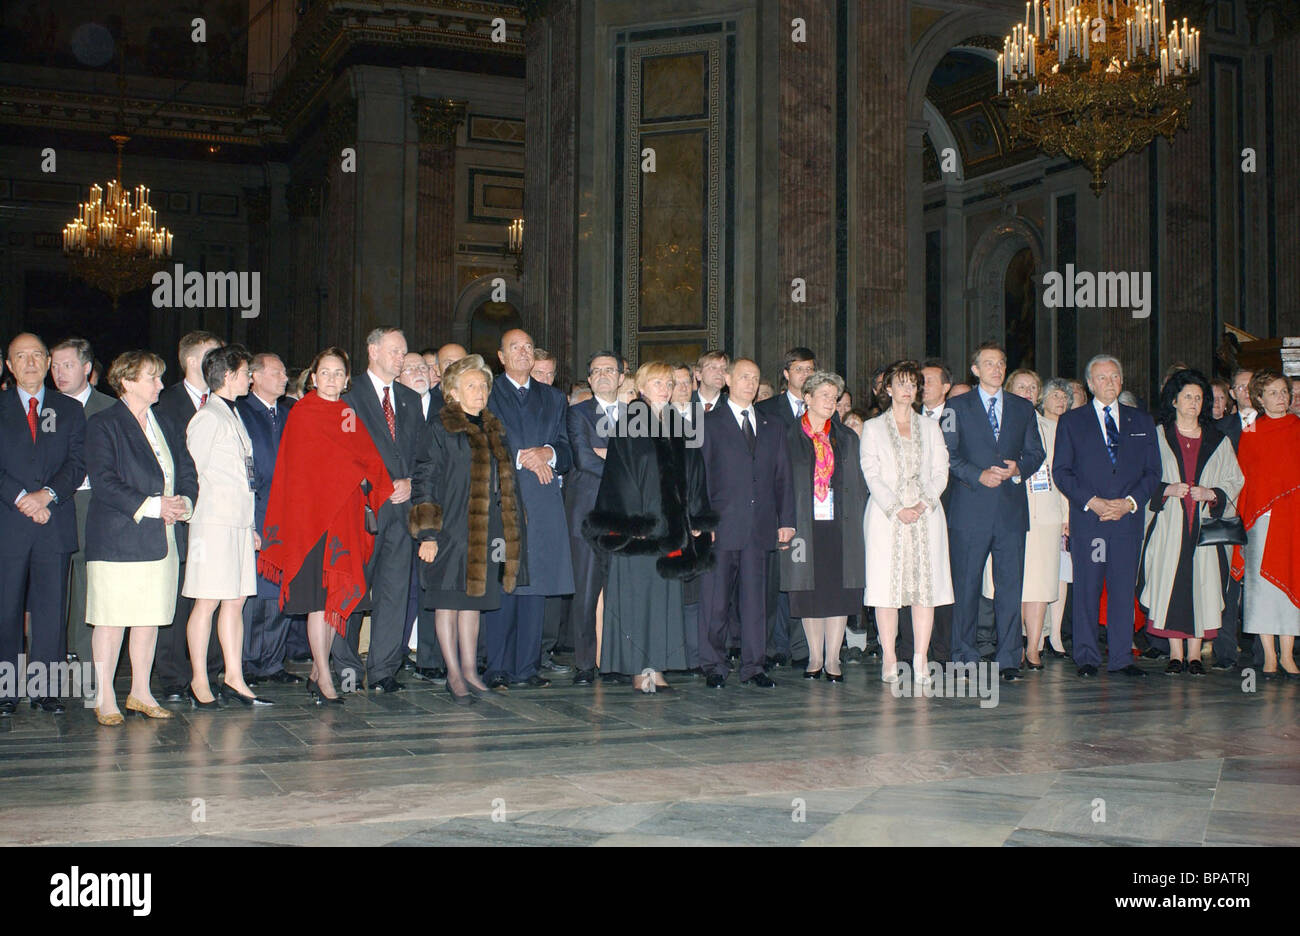 Putin, heads of states tour St Isaac Cathedral - Stock Image